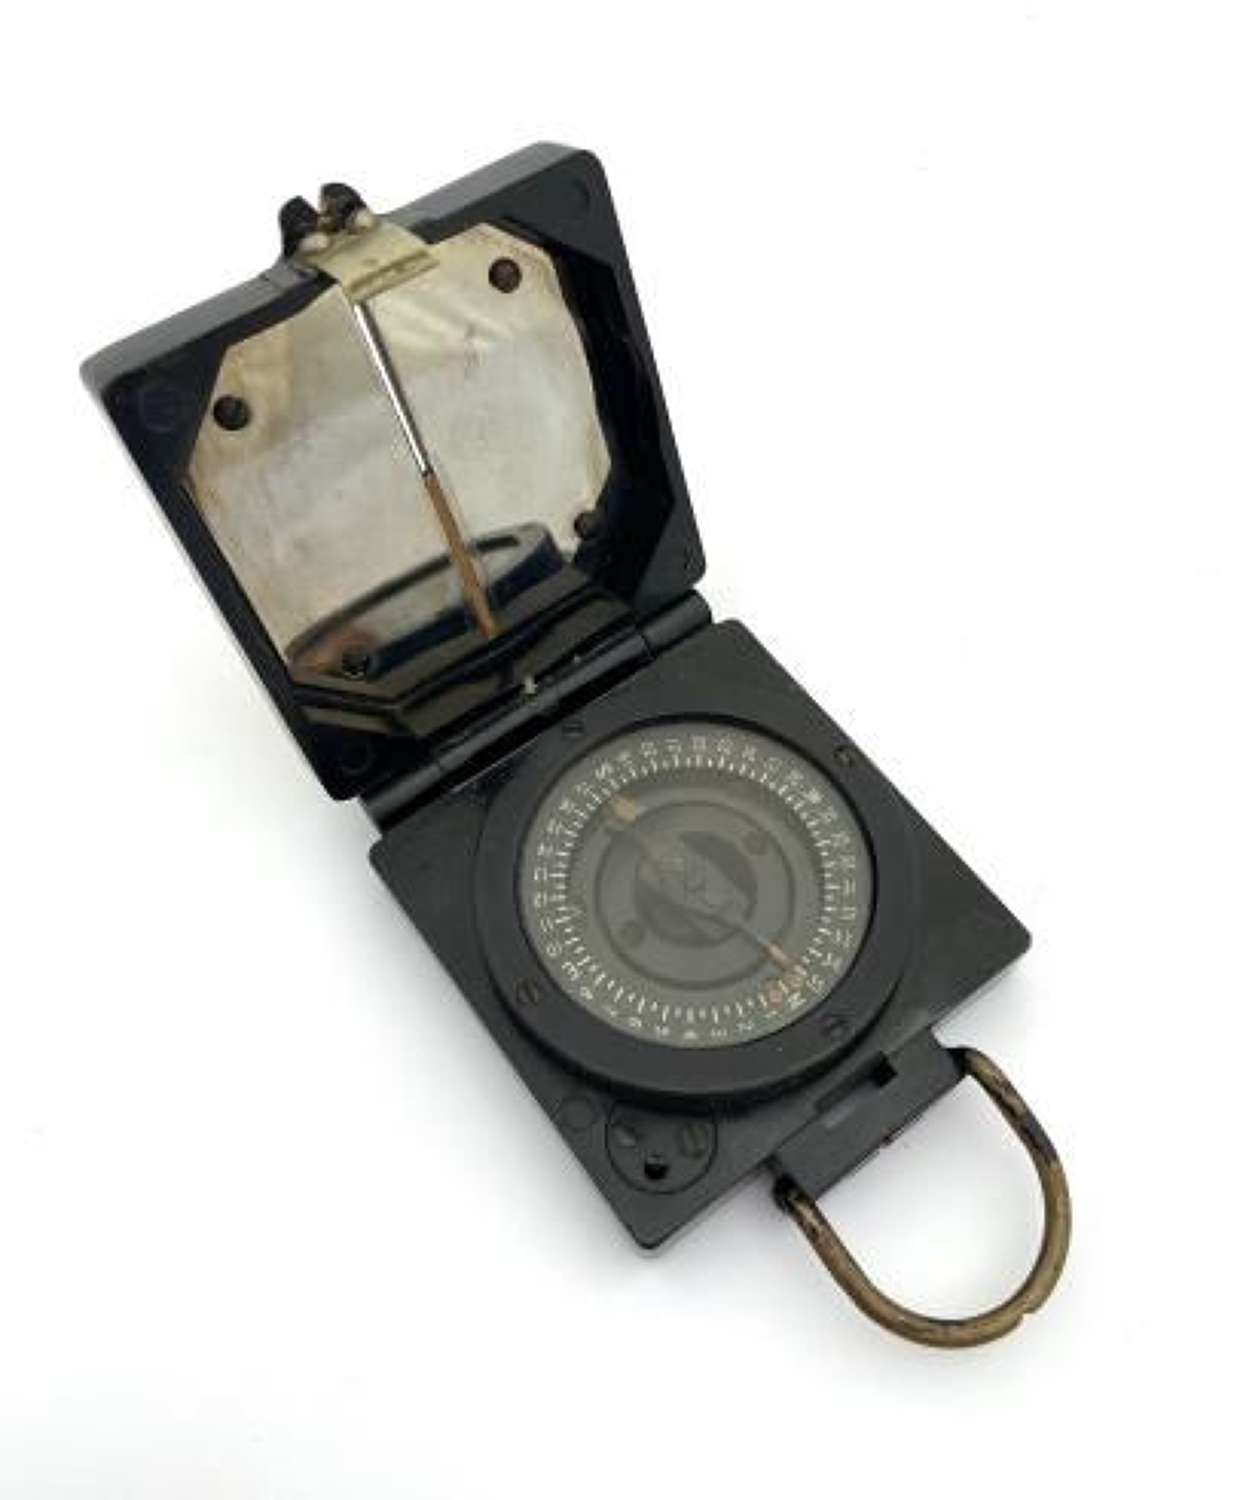 Original WW2 Compass Magnetic Marching Mark 1